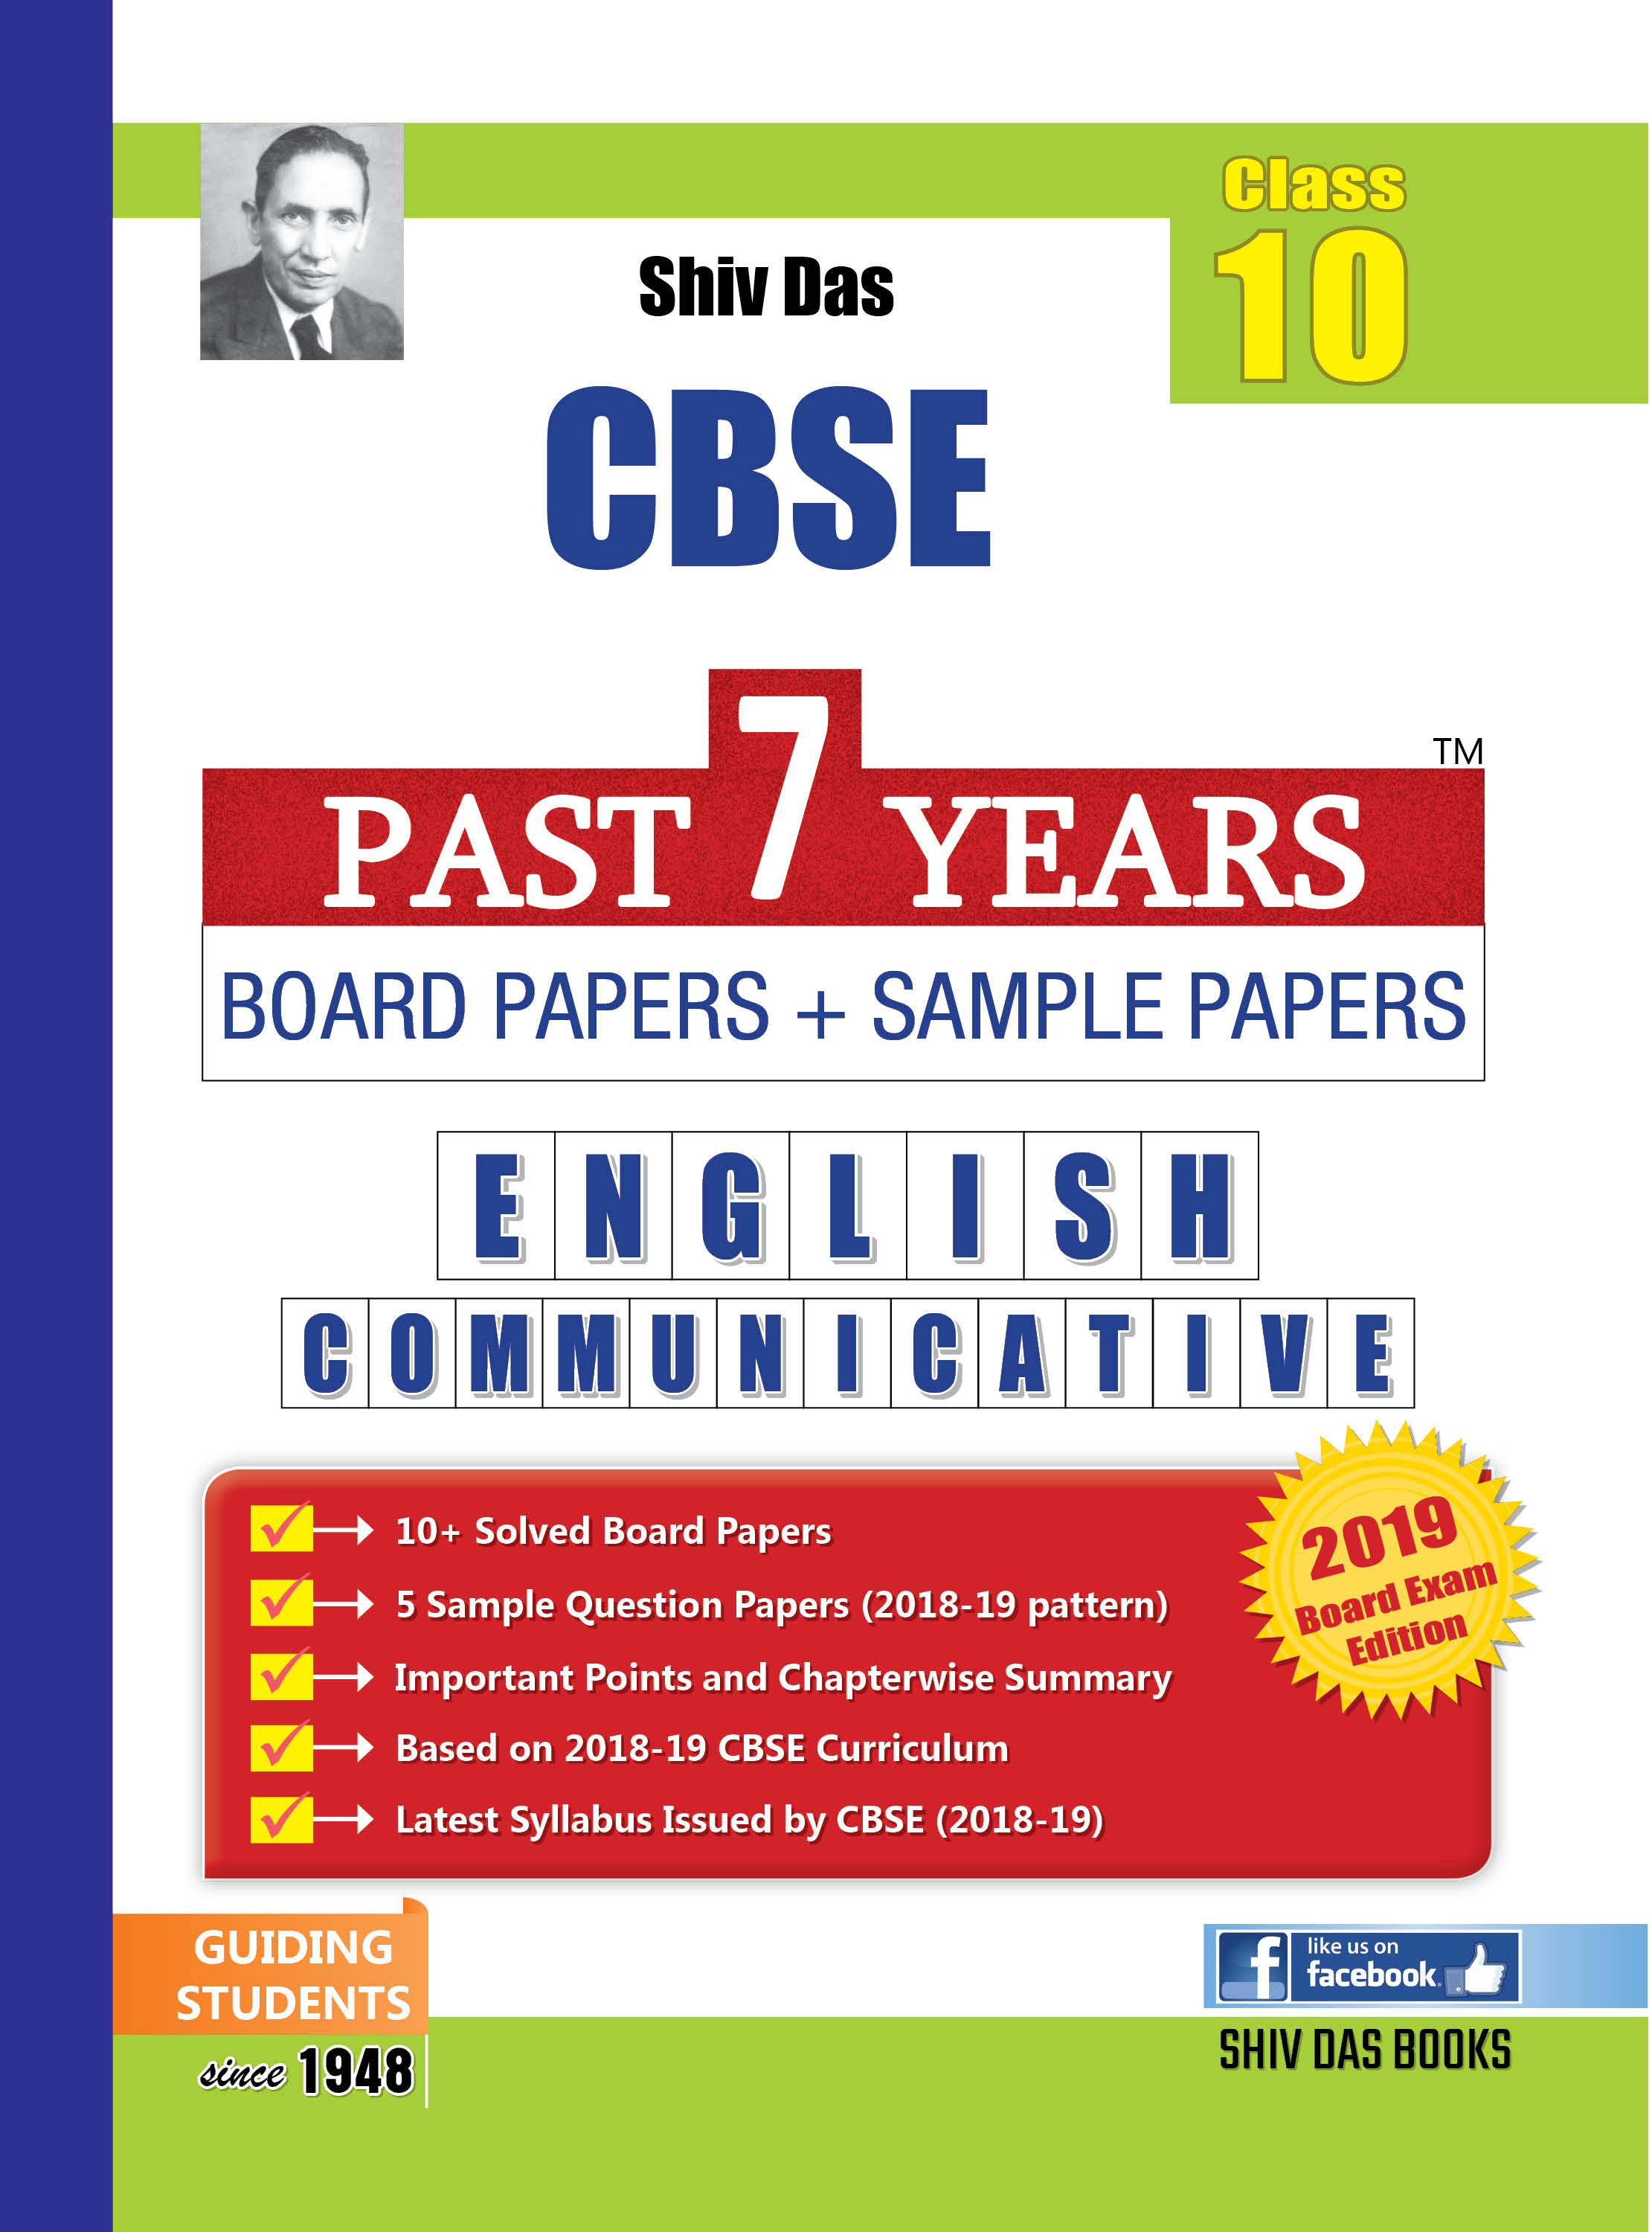 CBSE Past 7 Years Solved Board Papers+Sample Papers for Class 10 English Communicative (2019 Board Exam Edition)